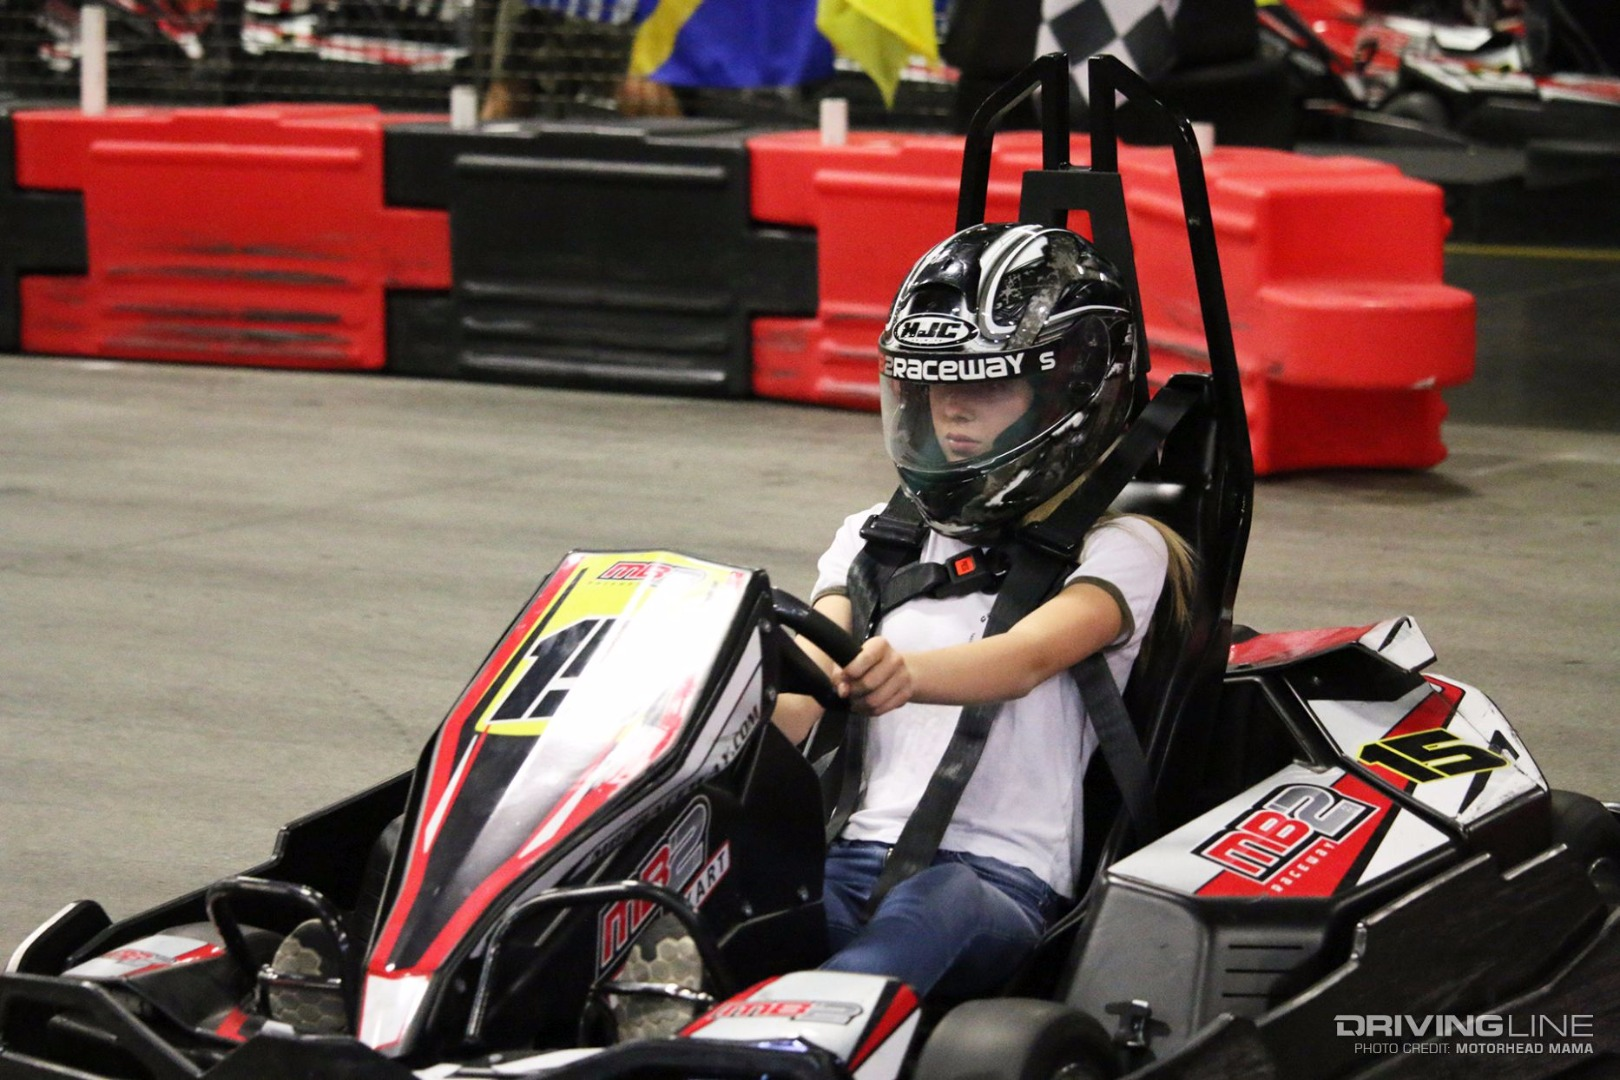 Think, Go kart racing remarkable